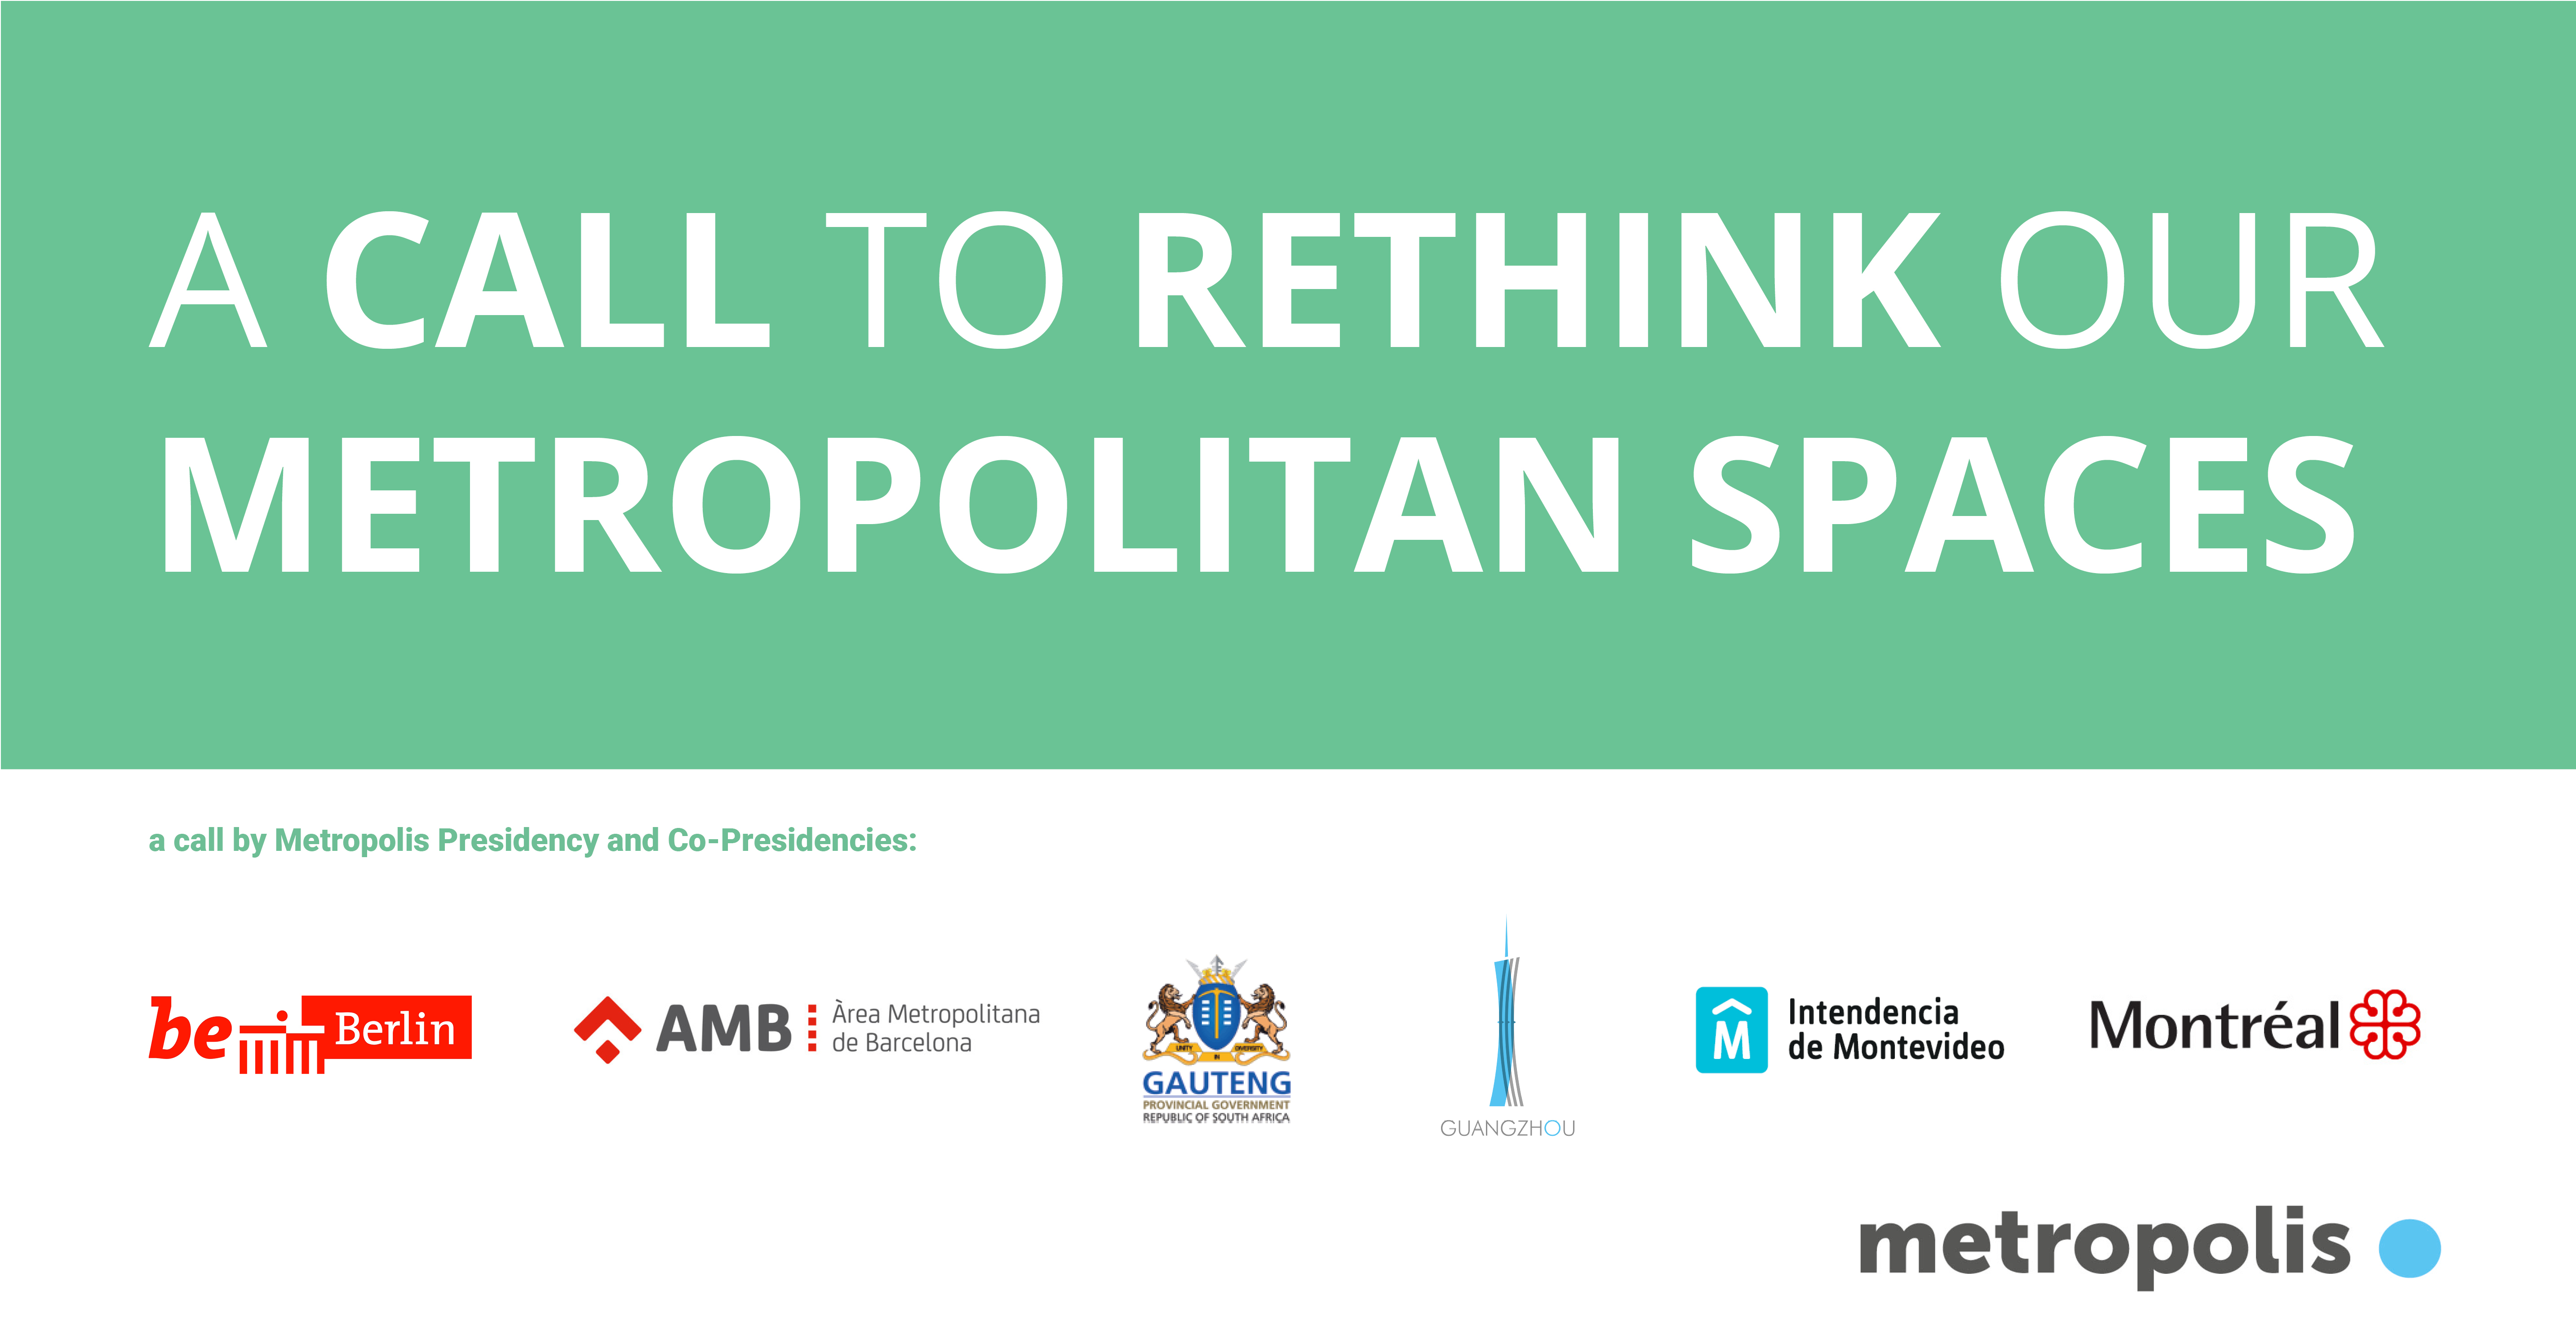 Metropolis Call to rethink our metropolitan spaces